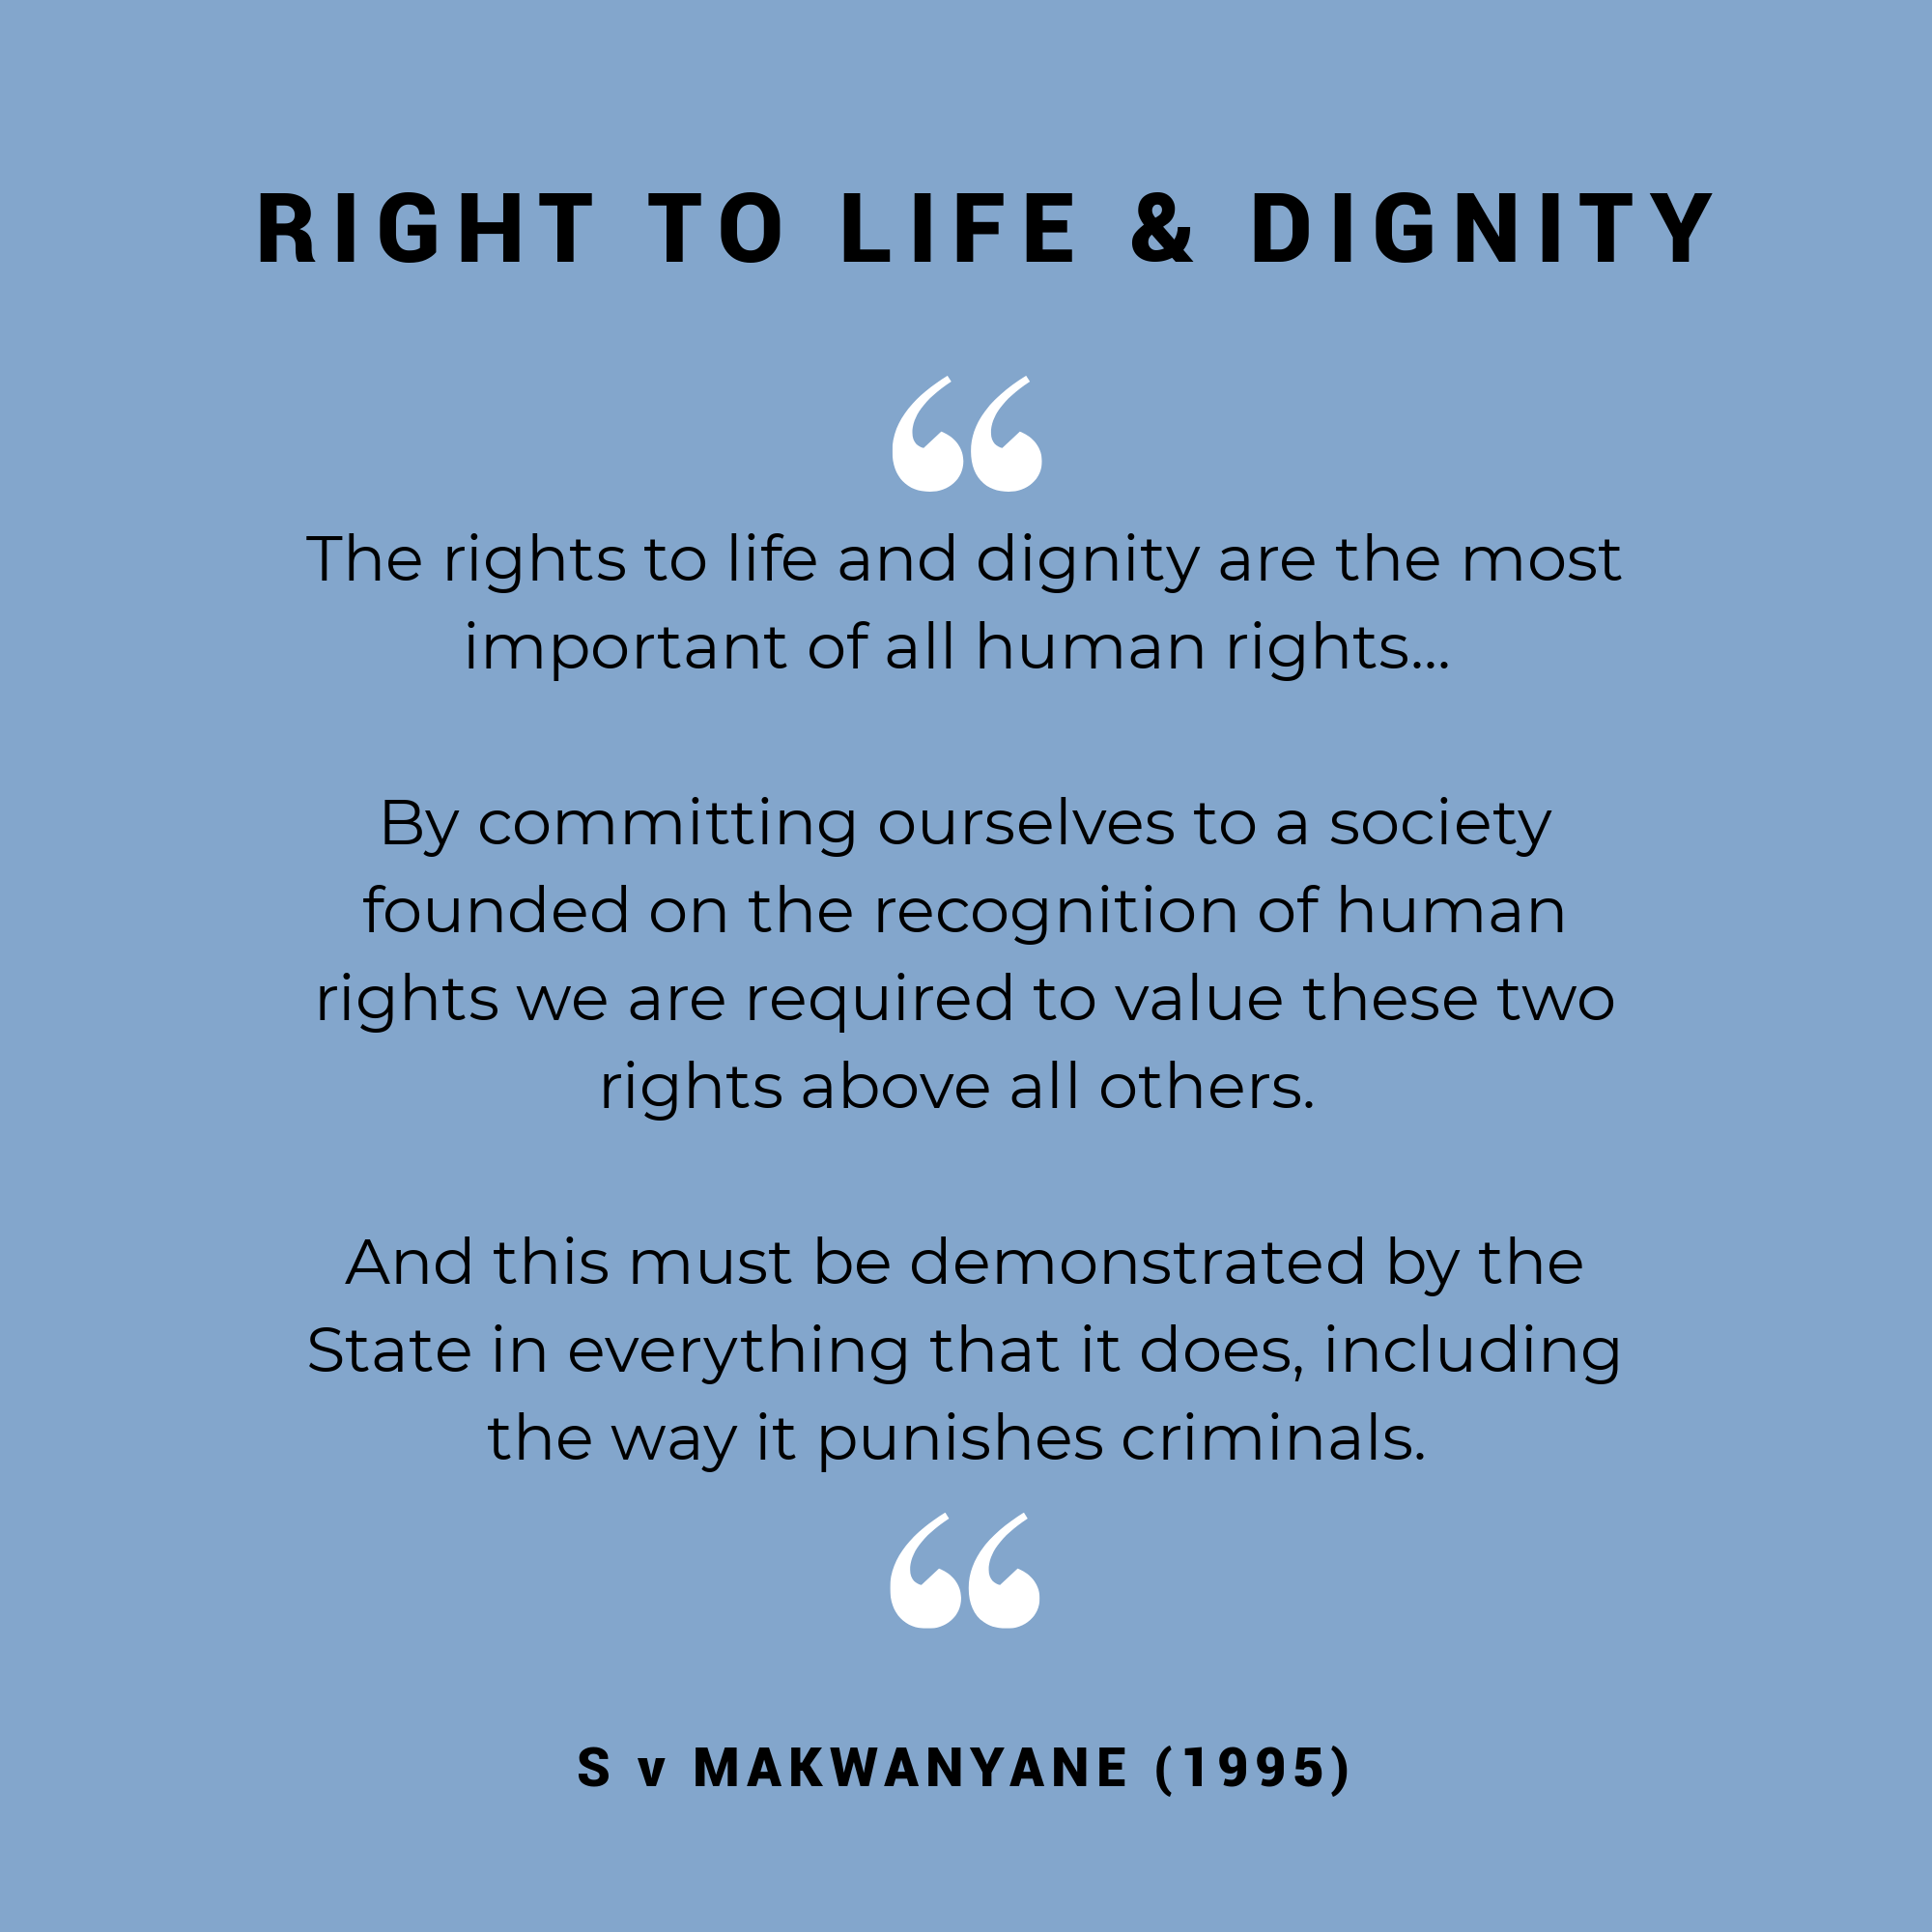 Right-to-life-and-dignity-s-v-makwanyane